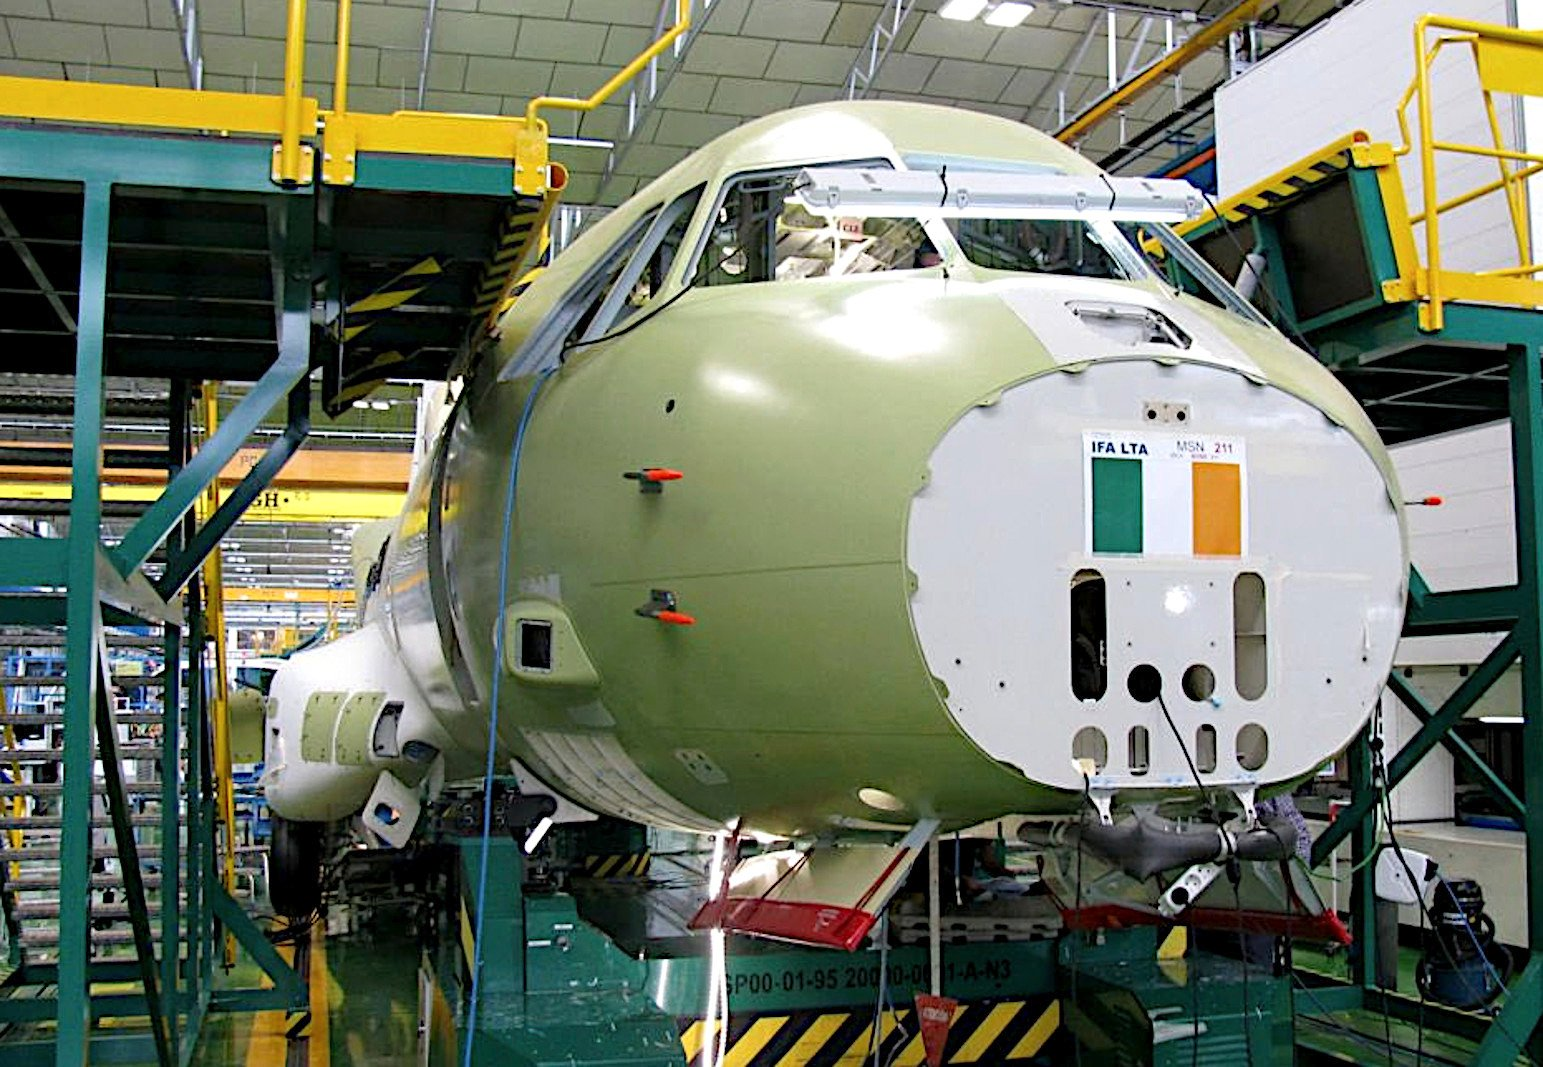 First C295W for Irish Air Corps in production 17-08-21 [Irish Air Corps]